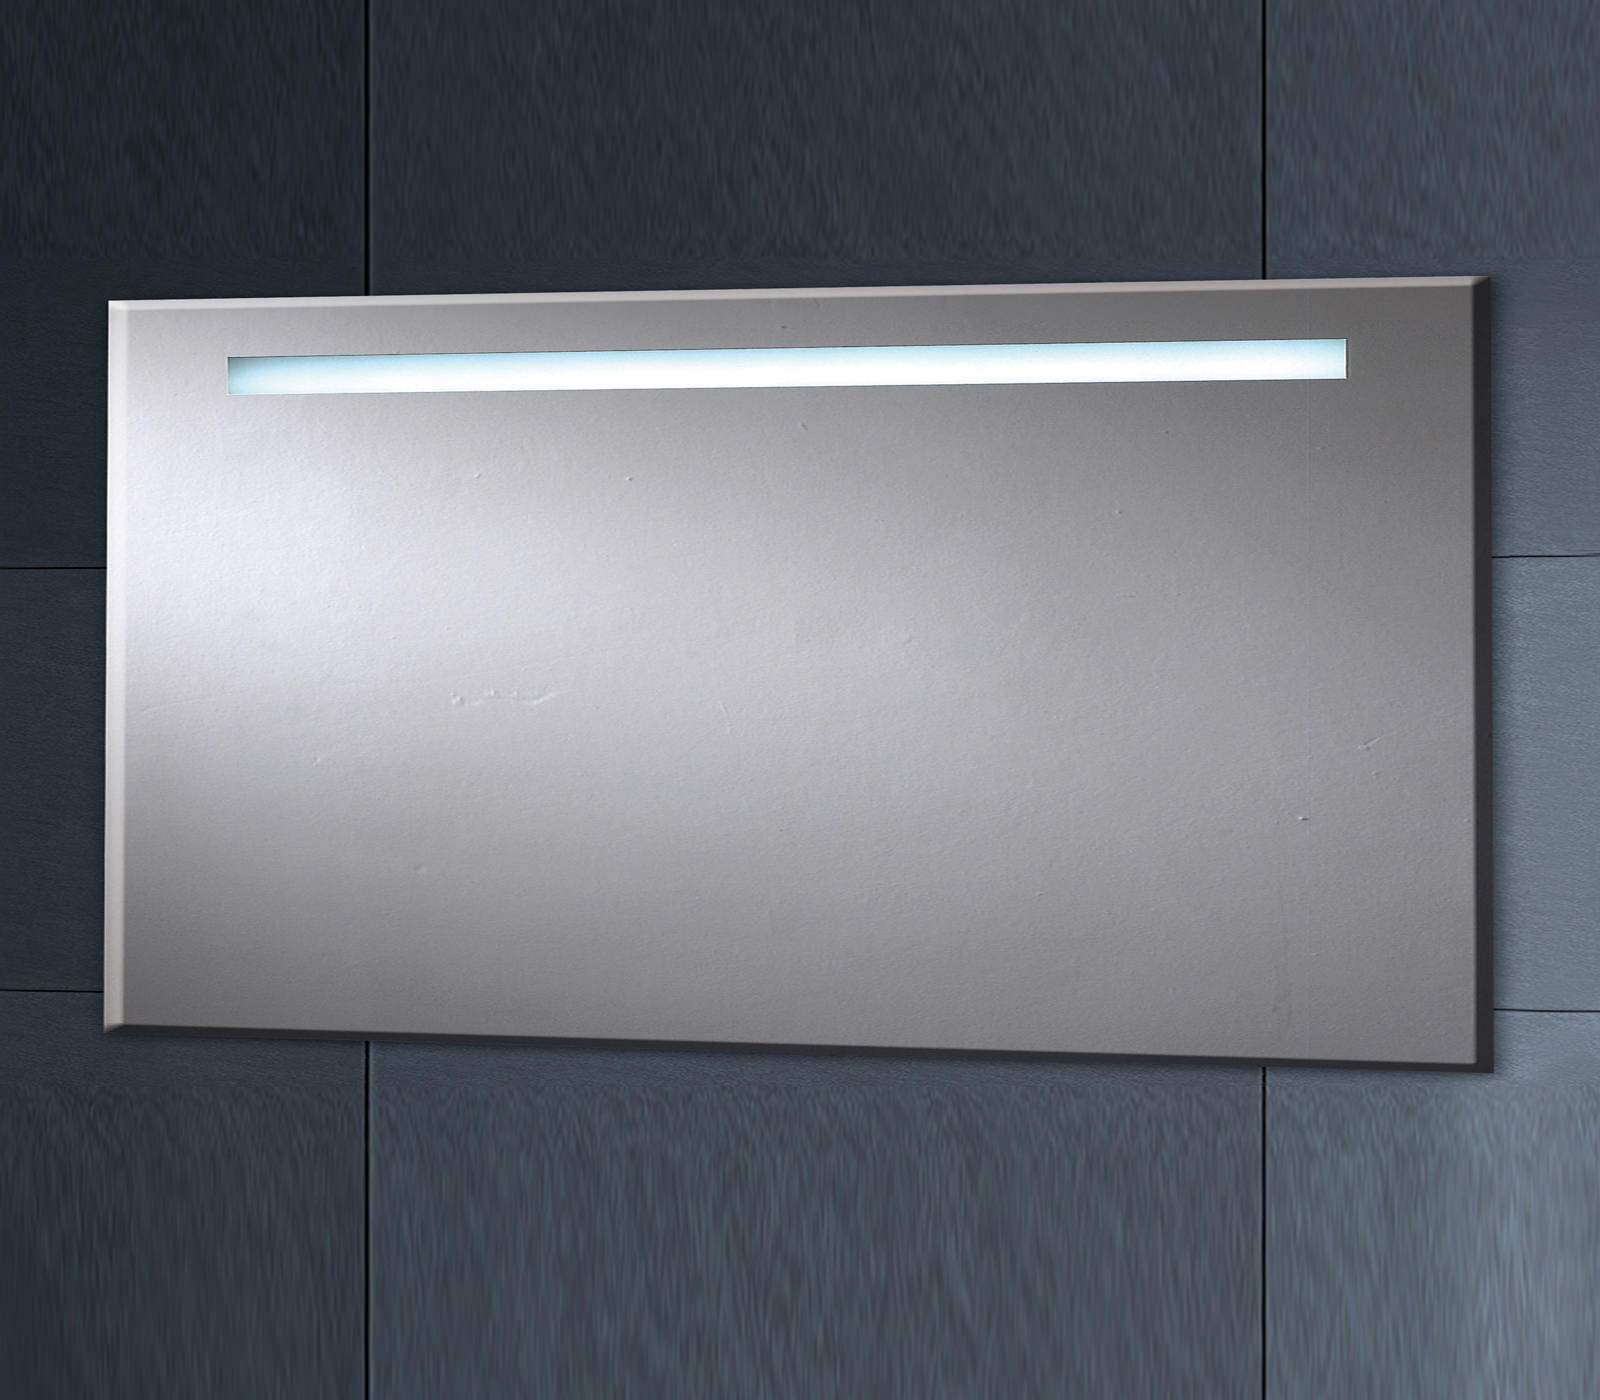 Bathroom Mirror Lights 900 X 600 led bathroom mirrors - illuminated - qs supplies